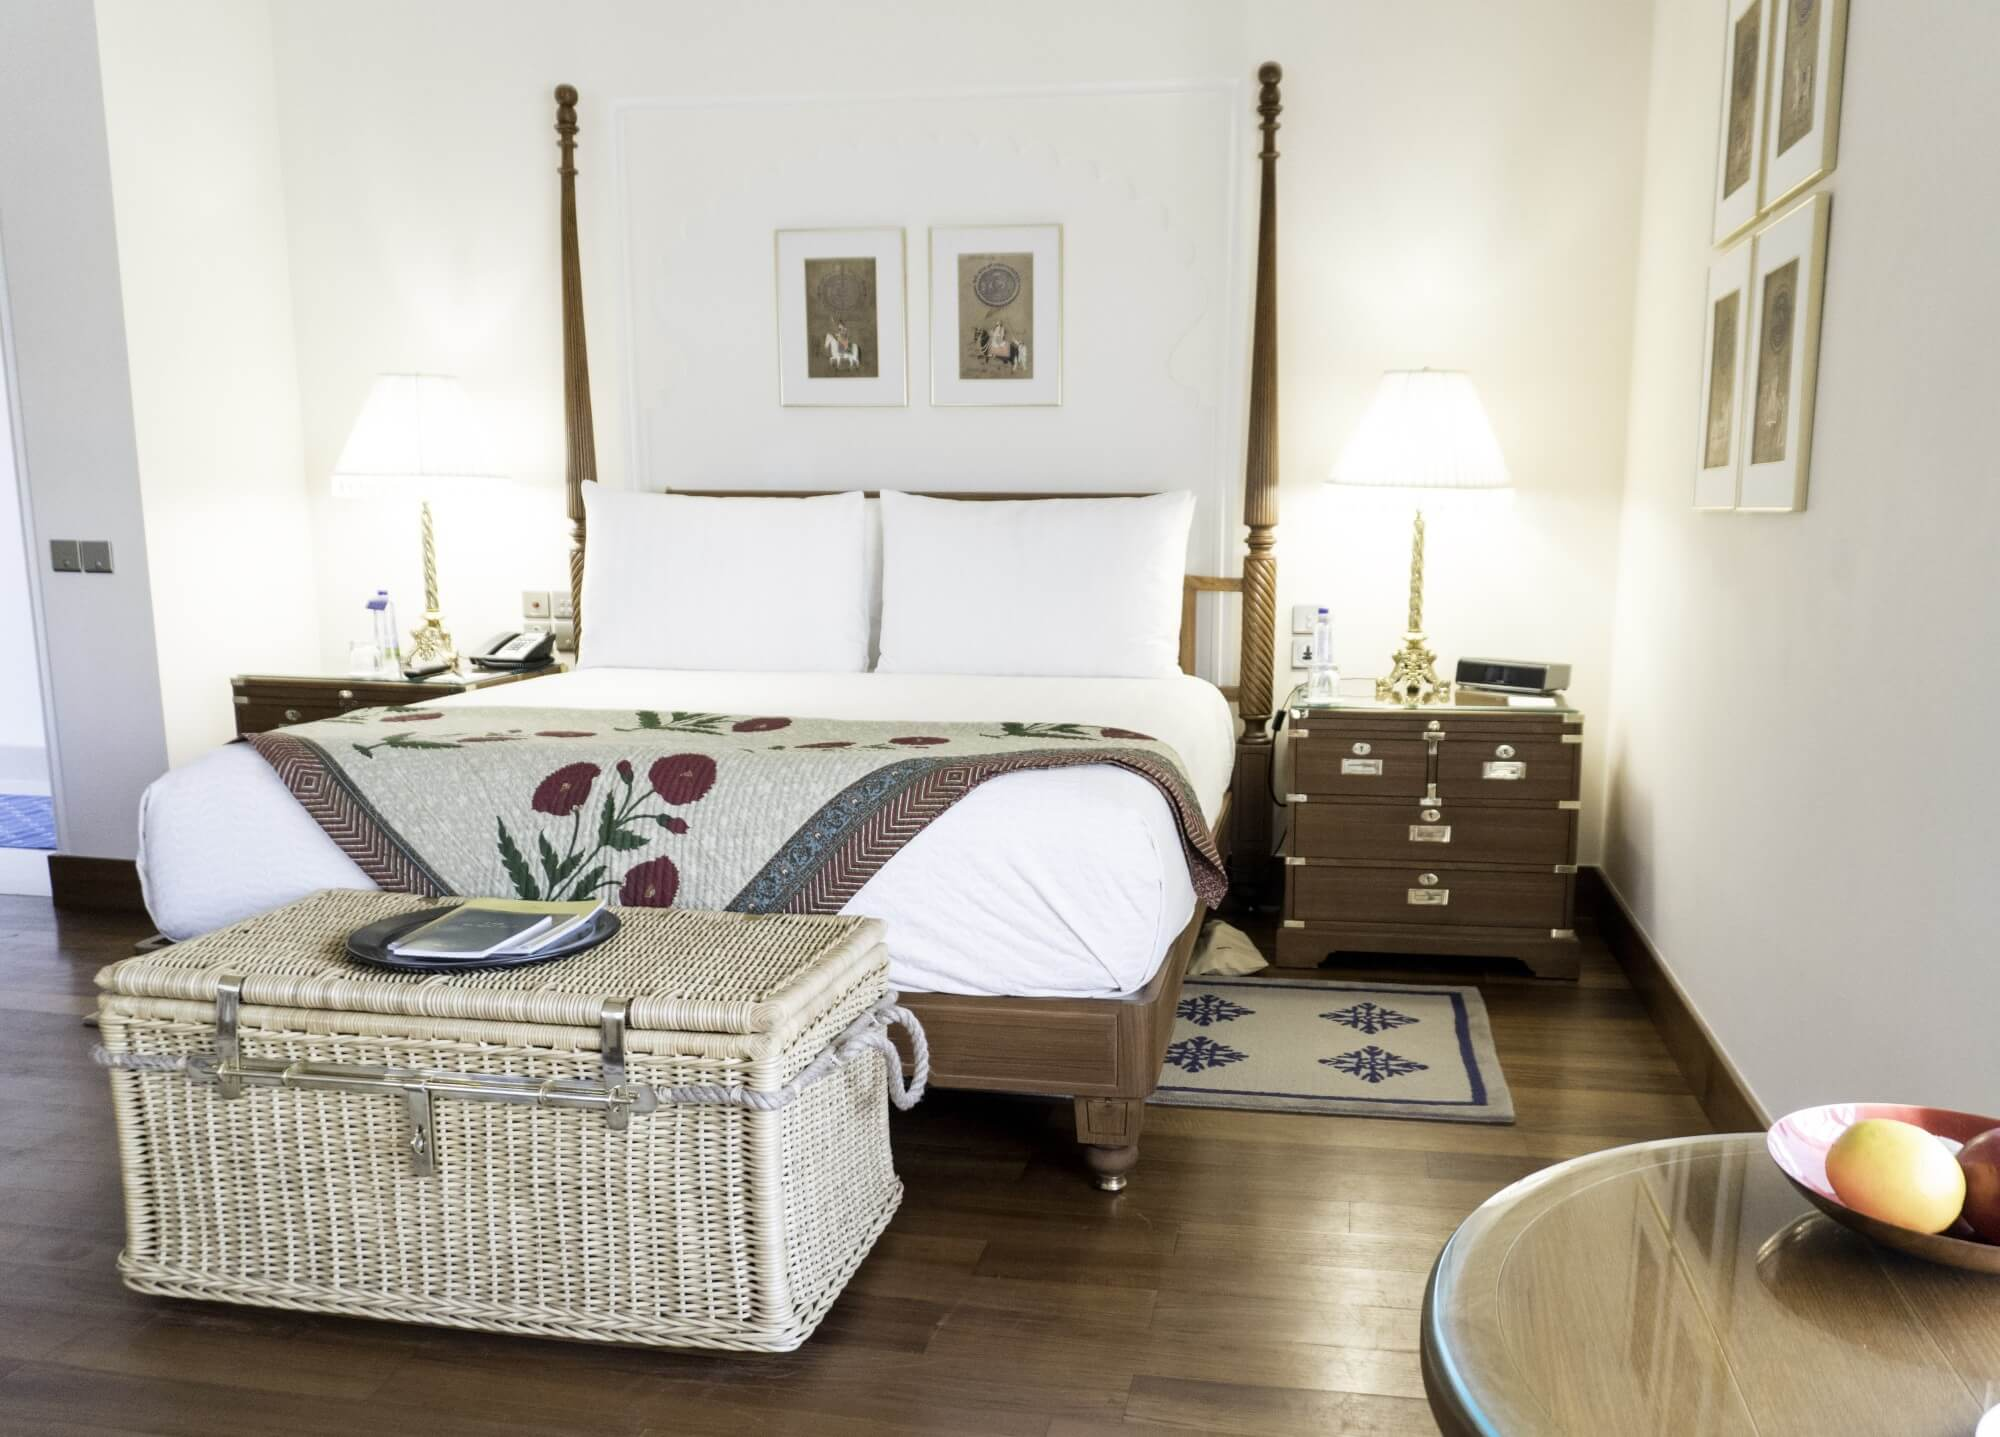 3 Ways Custom Bedding Can Enhance Your Bedroom Ambiance